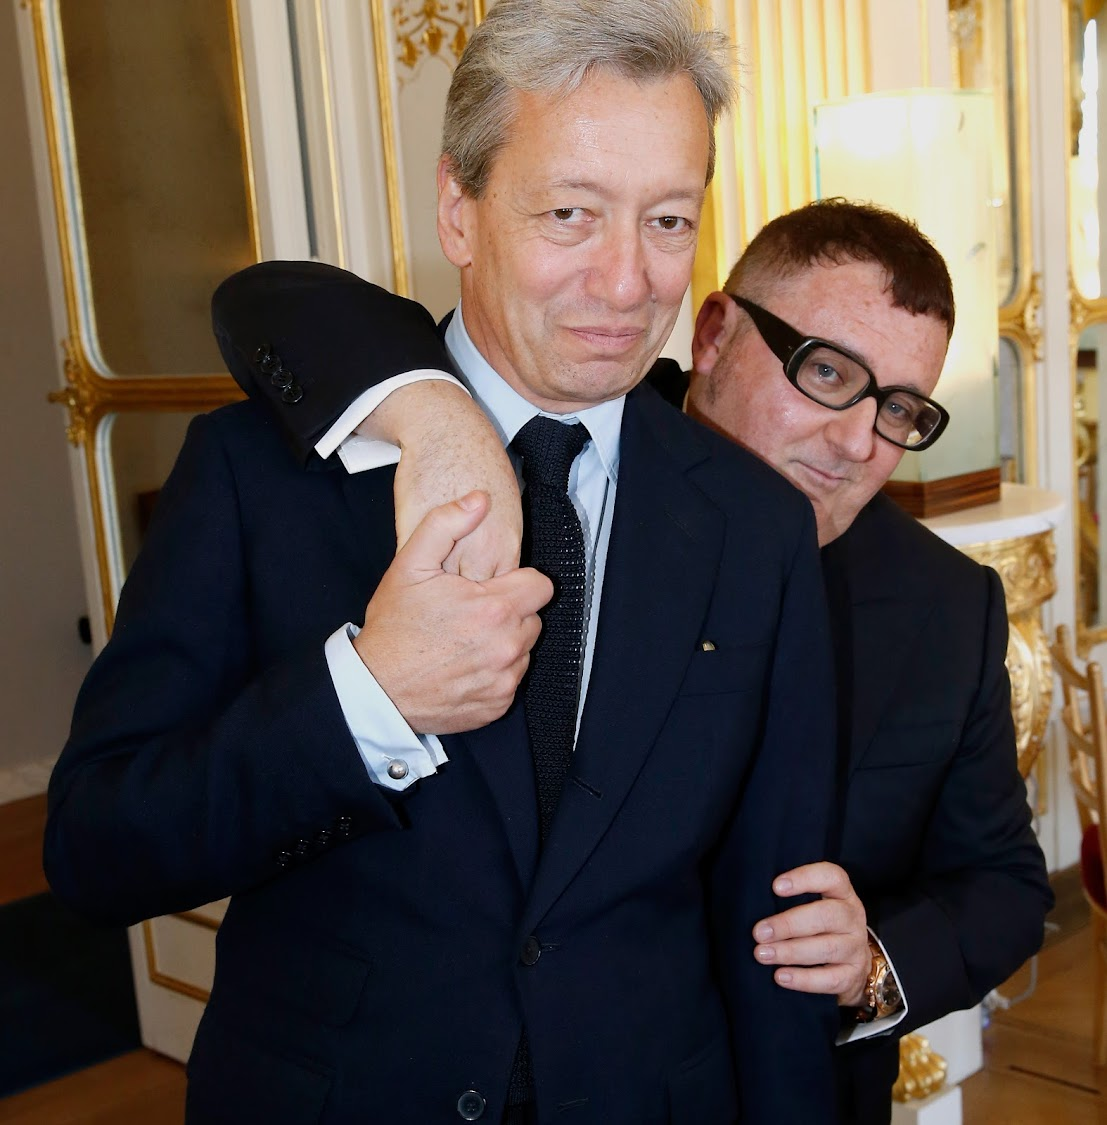 Frederic Malle and Alber Elbaz